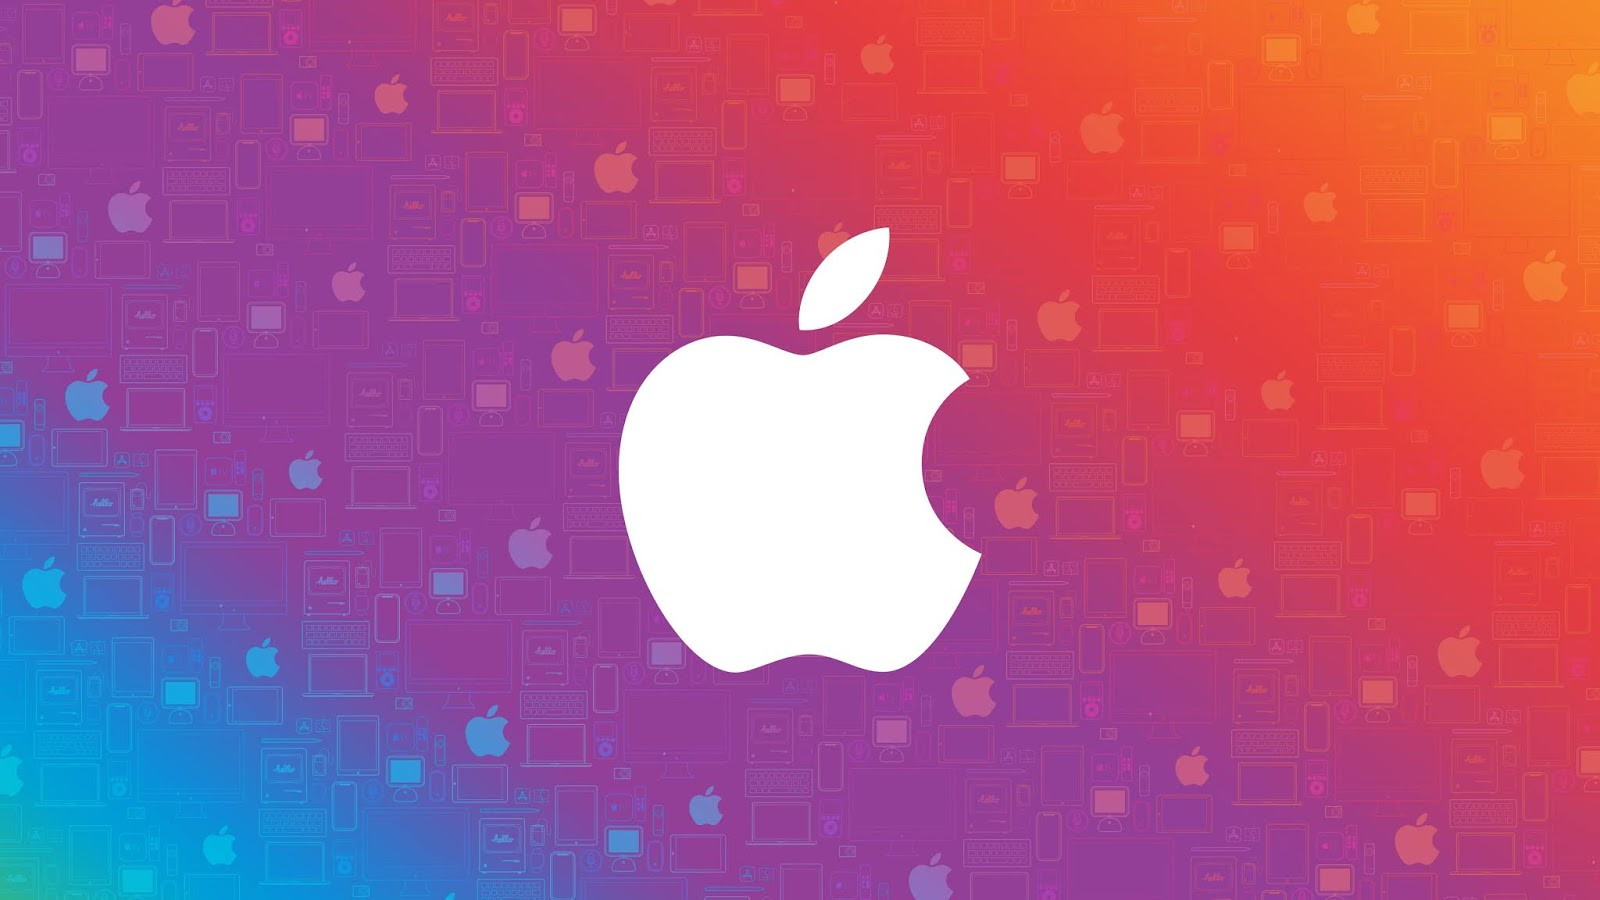 Apple, Colorful, Abstract, HD, 4K, Technology